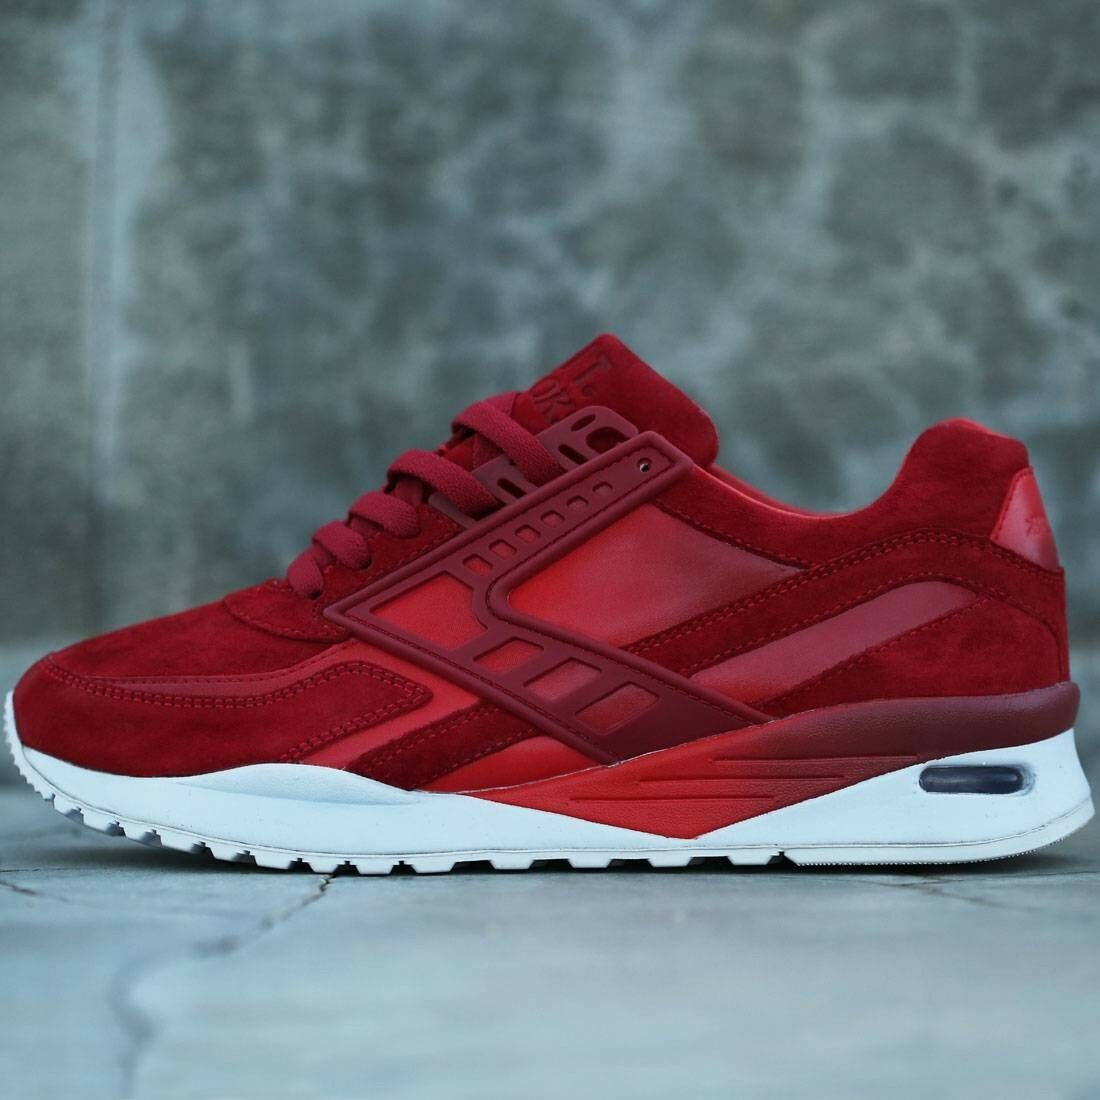 Size 12.0 BAIT x Brooks Regent Inferno red Limited